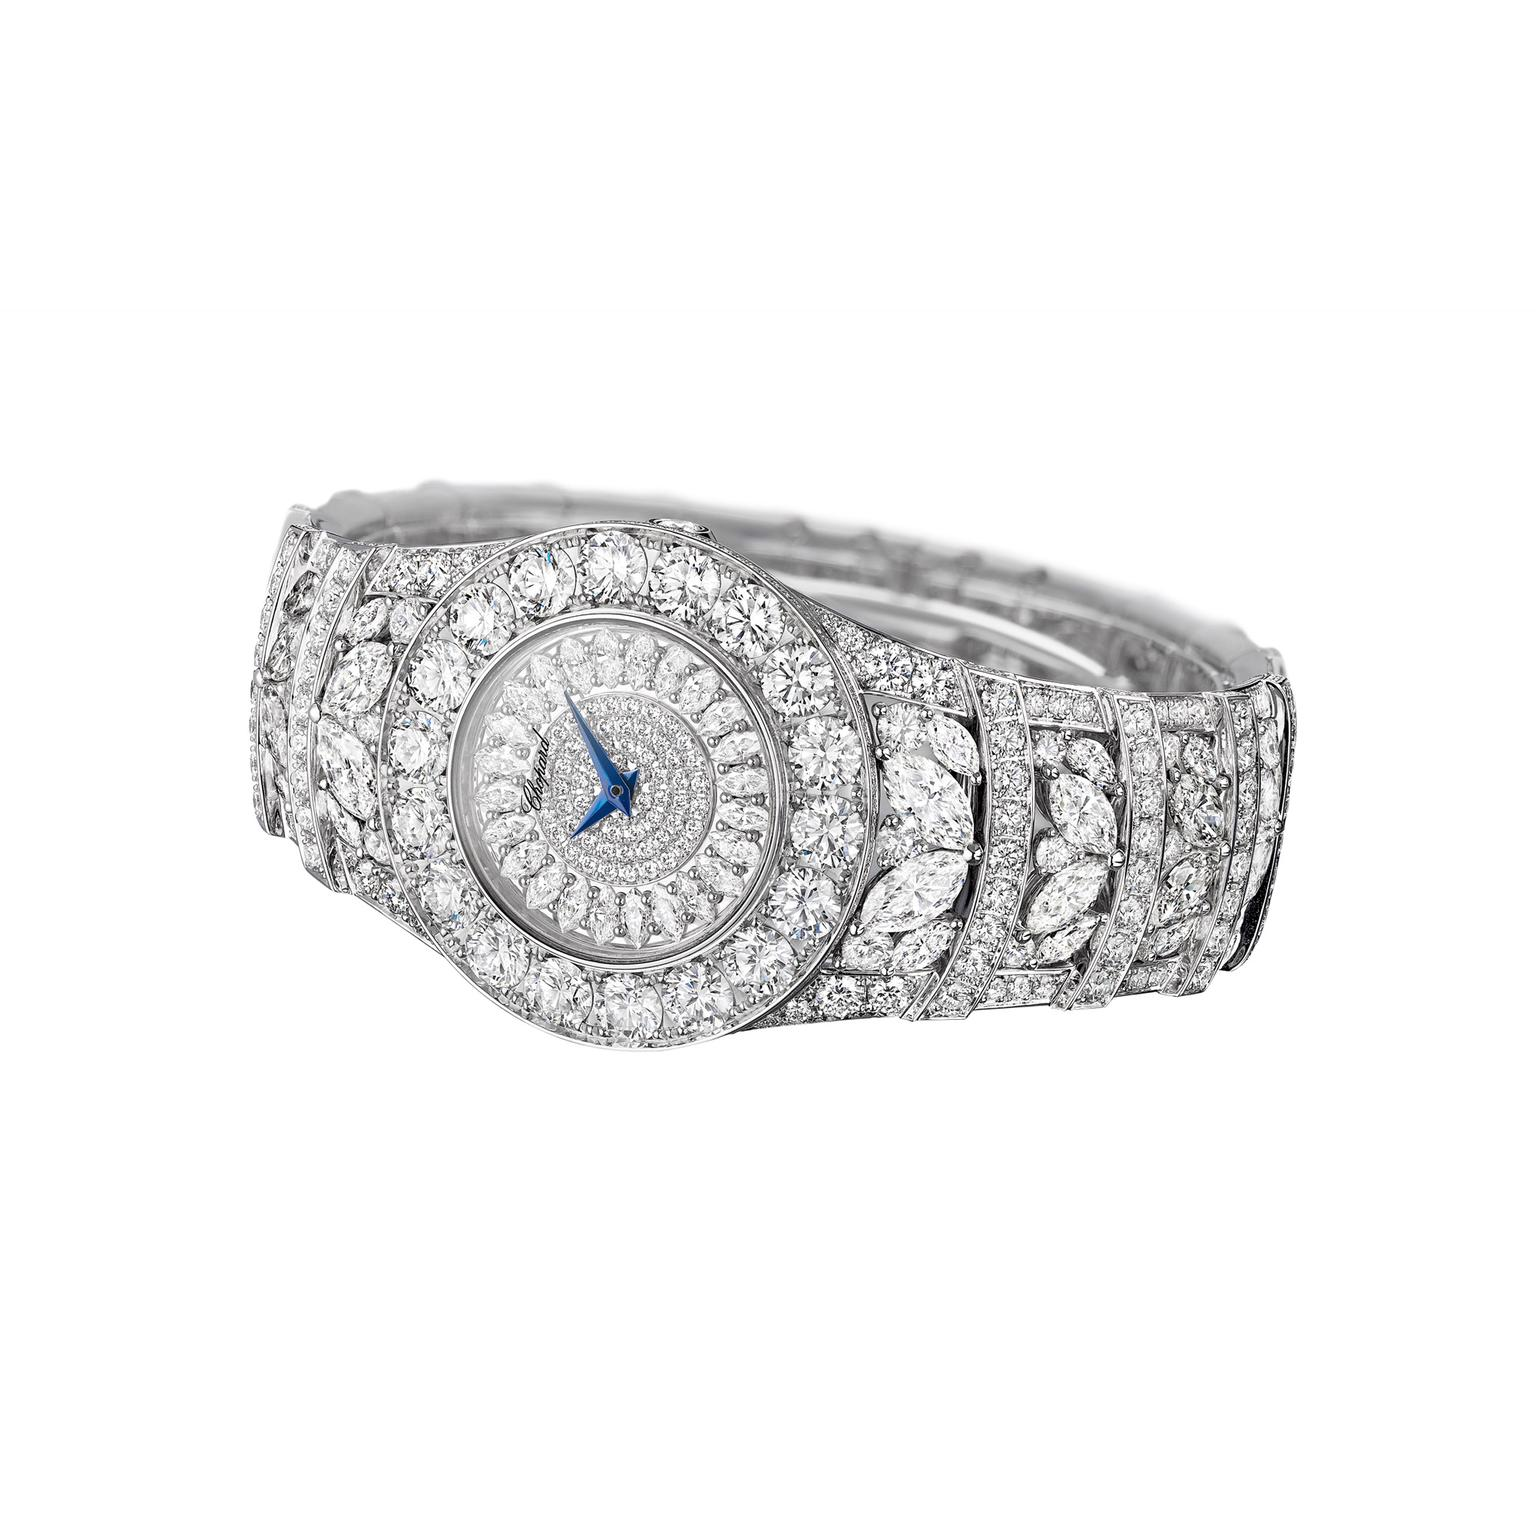 Chopard high jewellery diamond ladies' watch